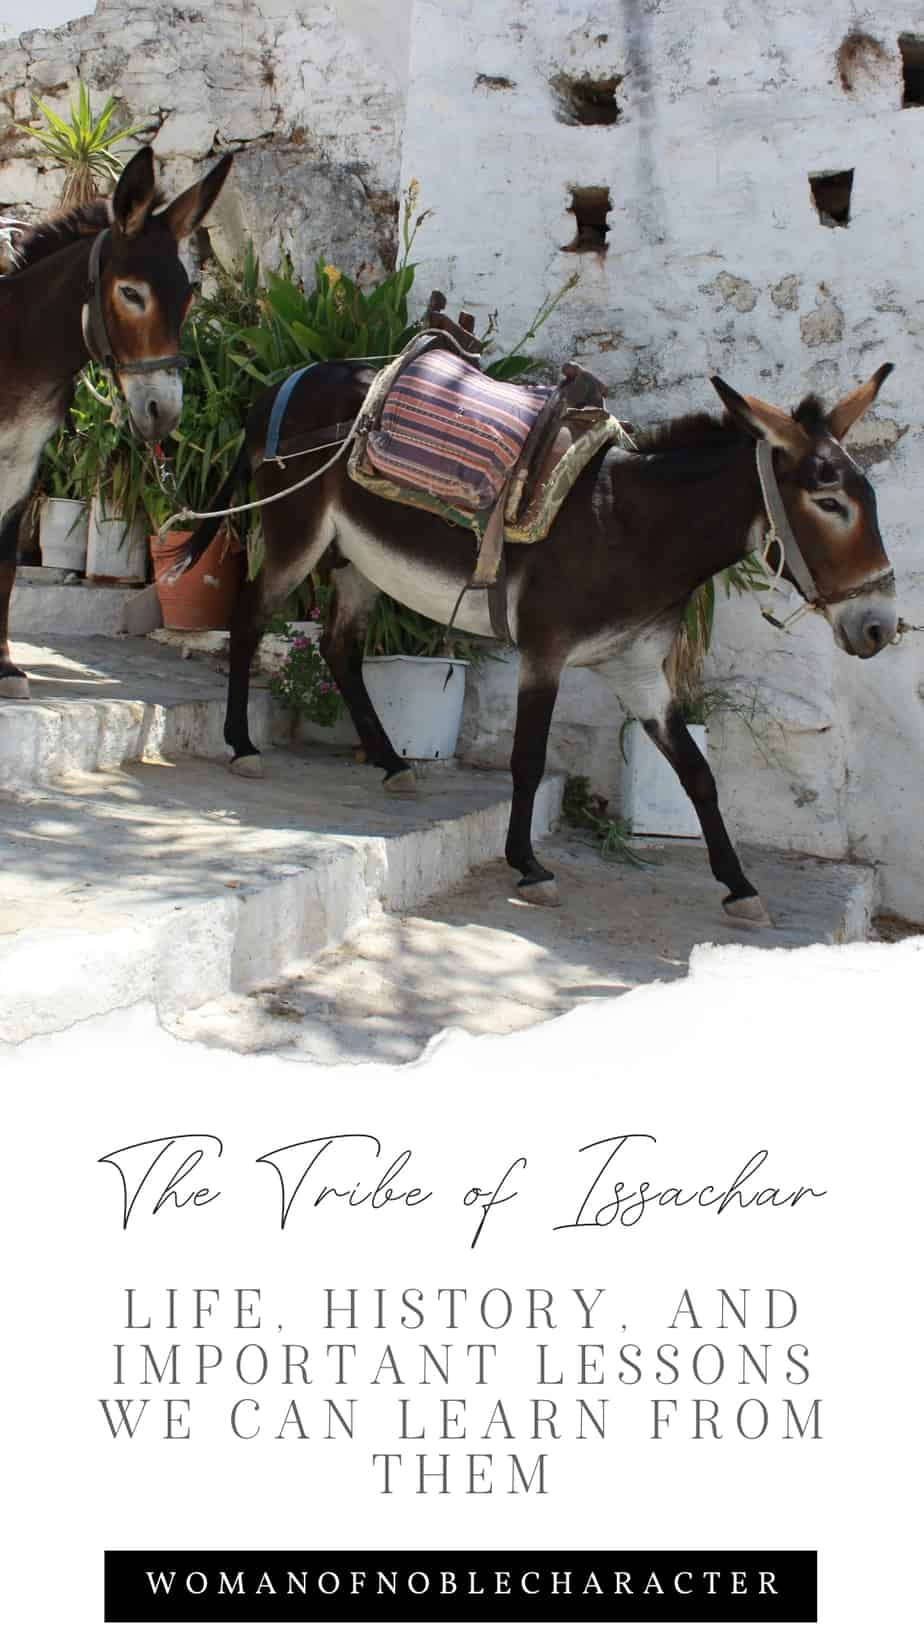 An image of a donkey walking down steps with an overlay of text that says,